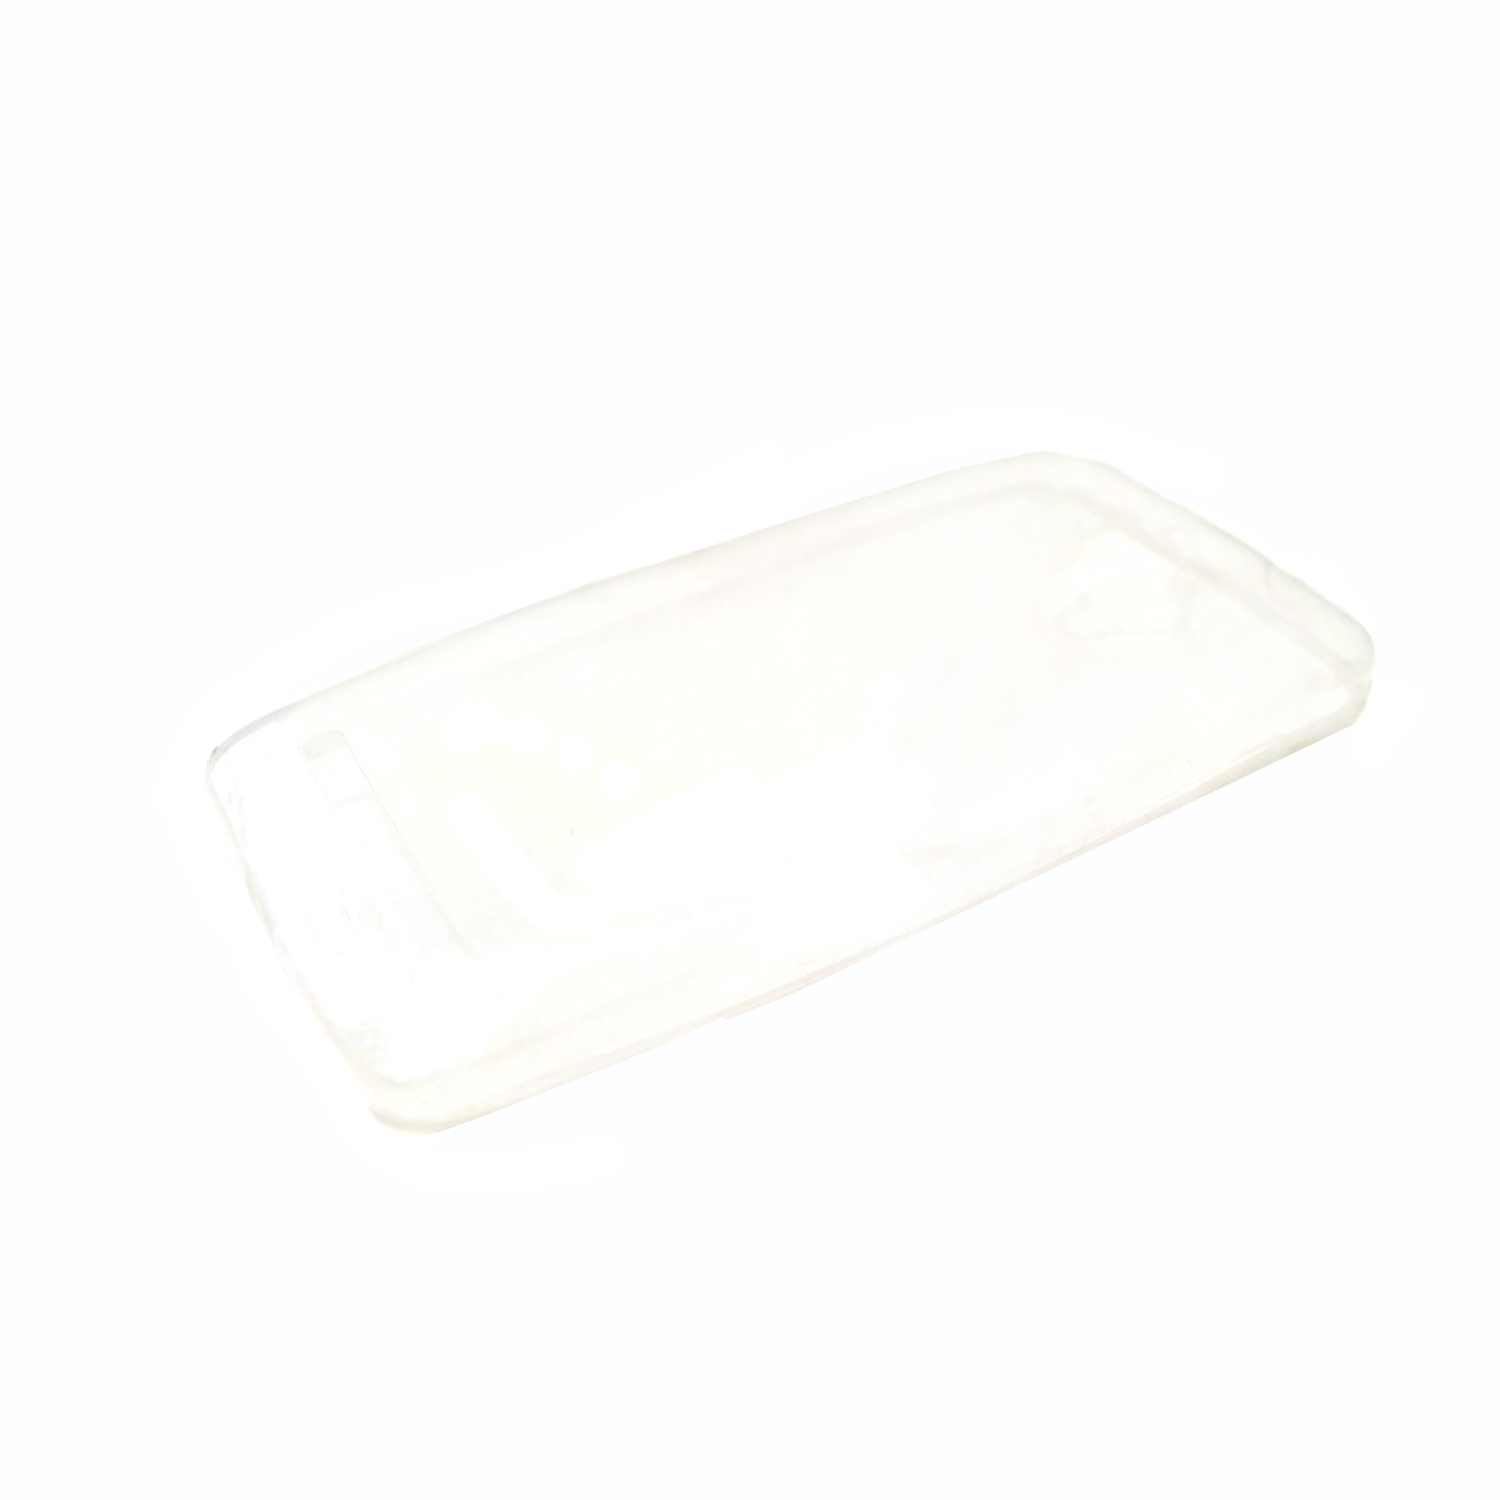 TPU Thin Clear Case for Asus Zenfone C (Clear)